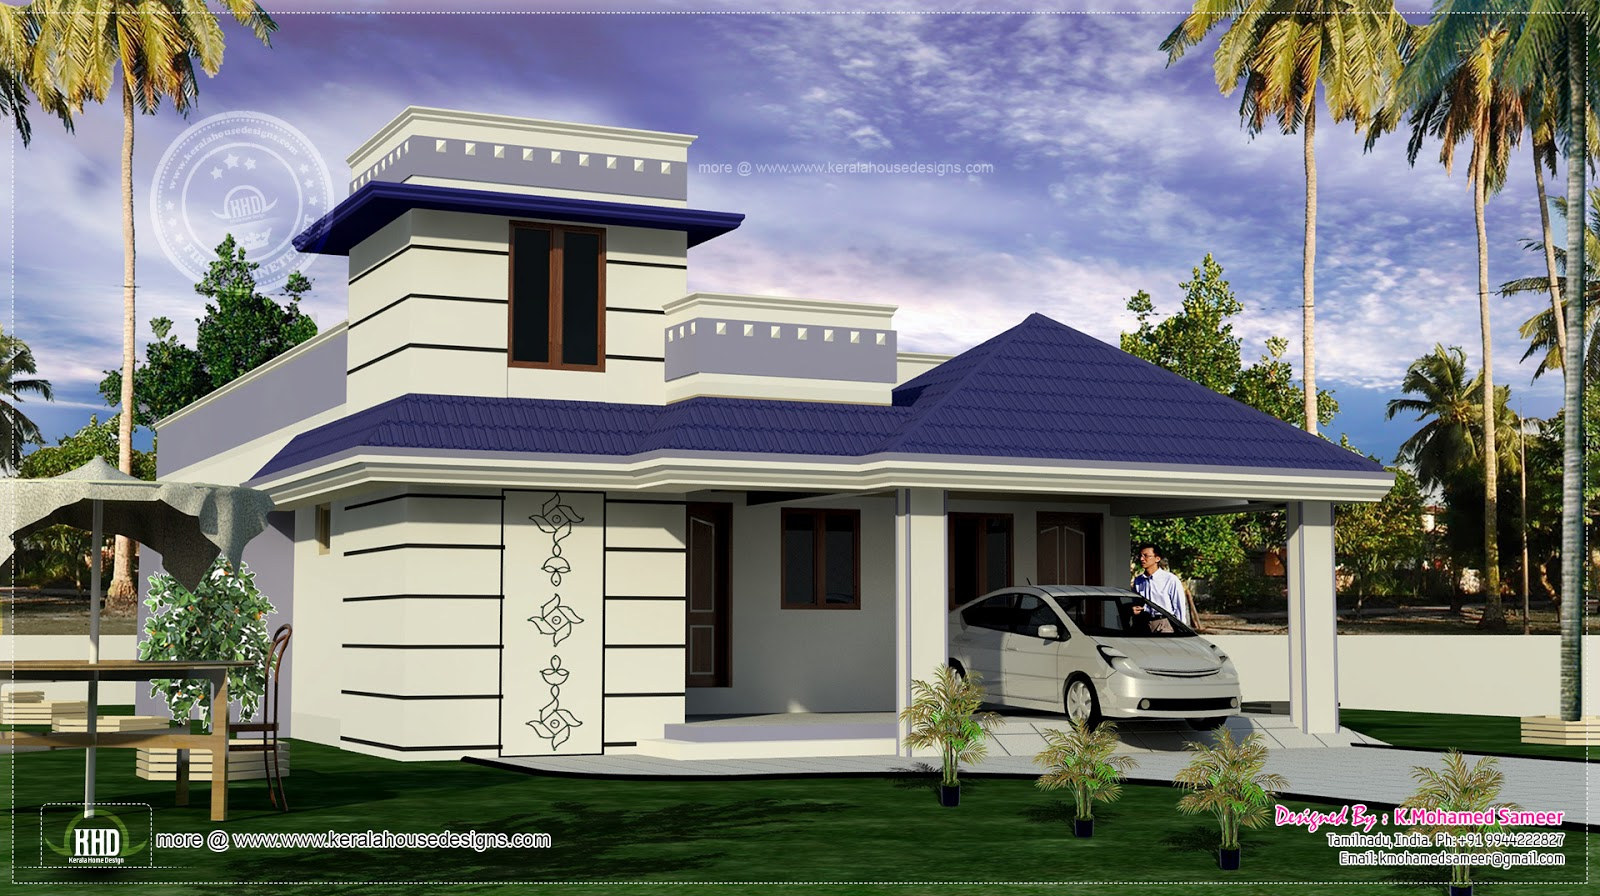 Ranch house designs single floor house designs one floor for Ranch home designs 2016